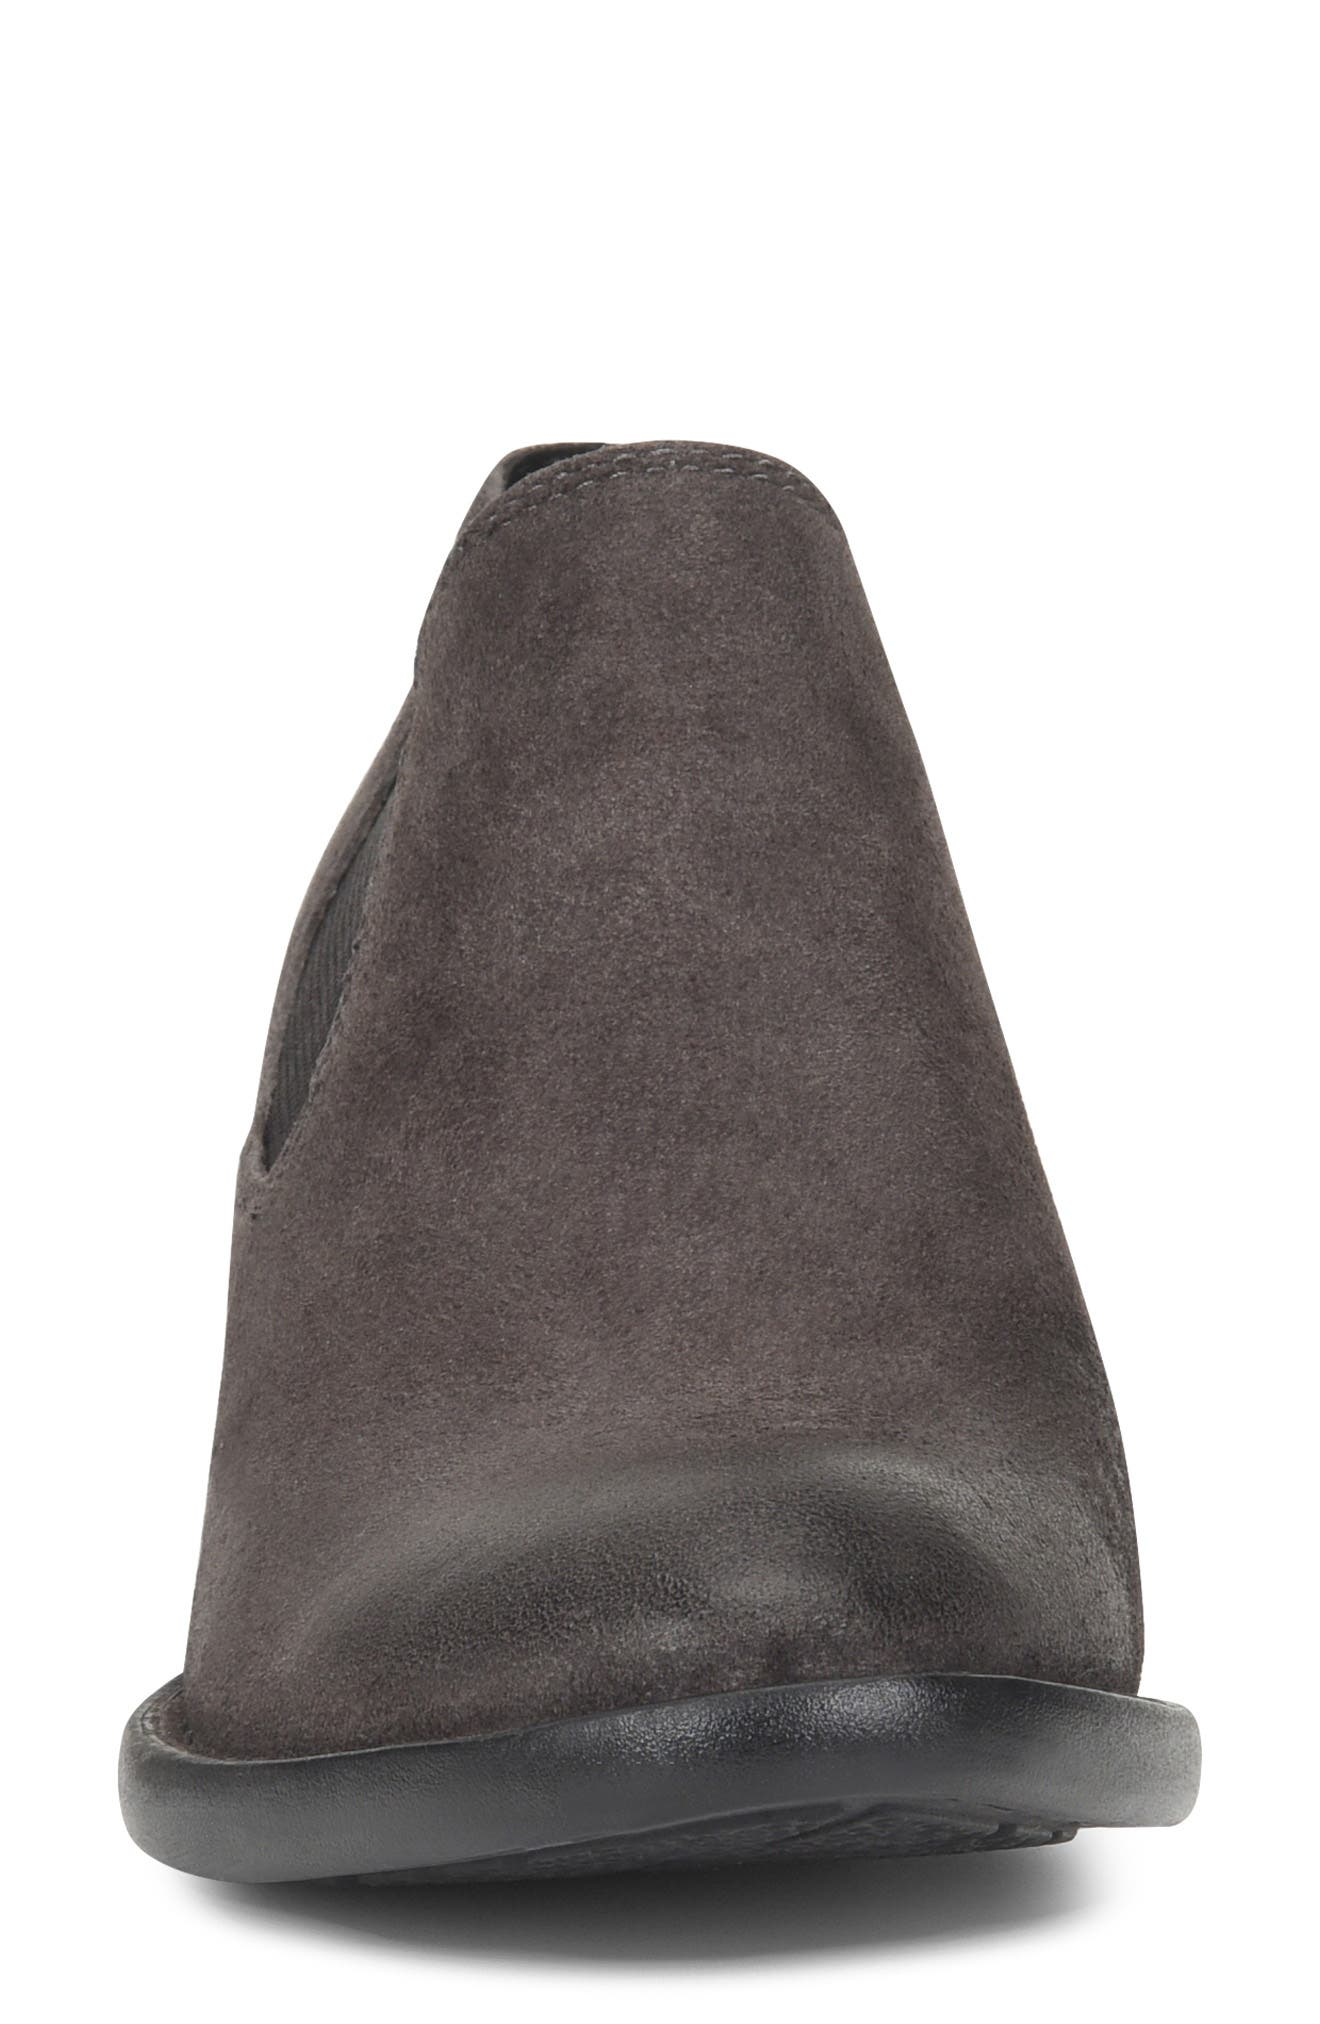 BØRN,                             Dallia Bootie,                             Alternate thumbnail 4, color,                             DARK GREY DISTRESSED LEATHER